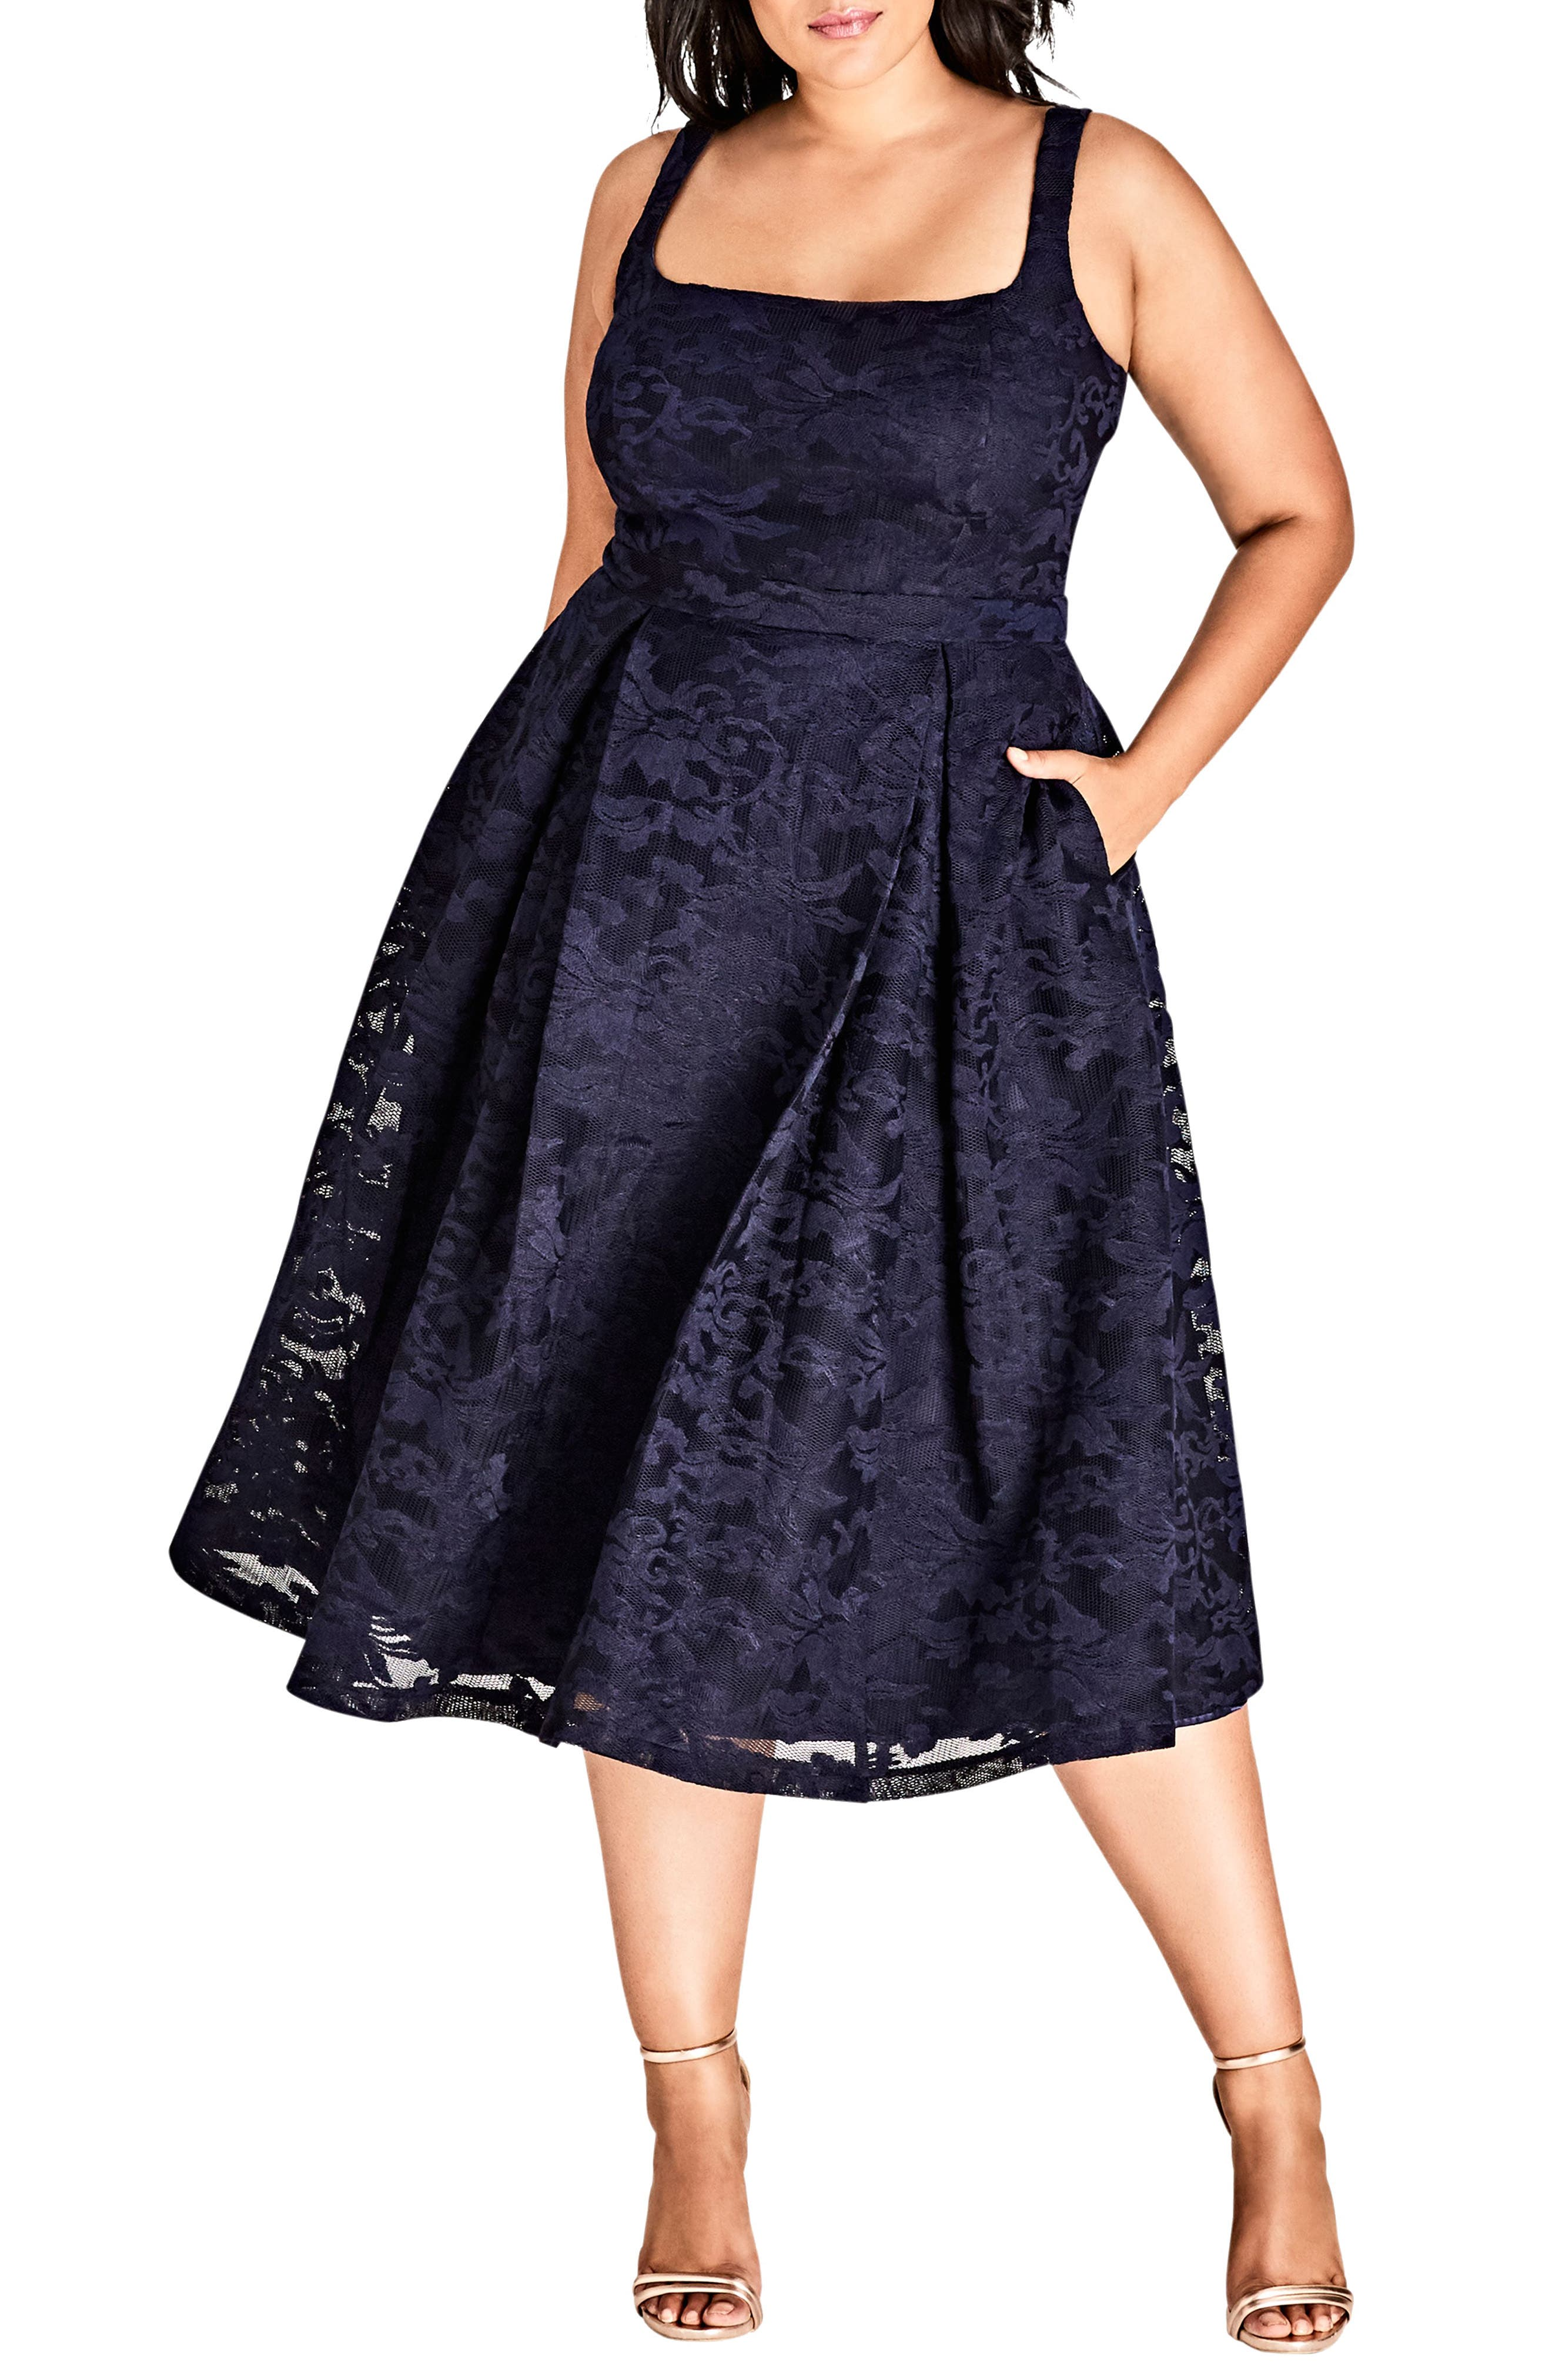 Jackie O Lace Fit & Flare Dress,                             Main thumbnail 1, color,                             Navy